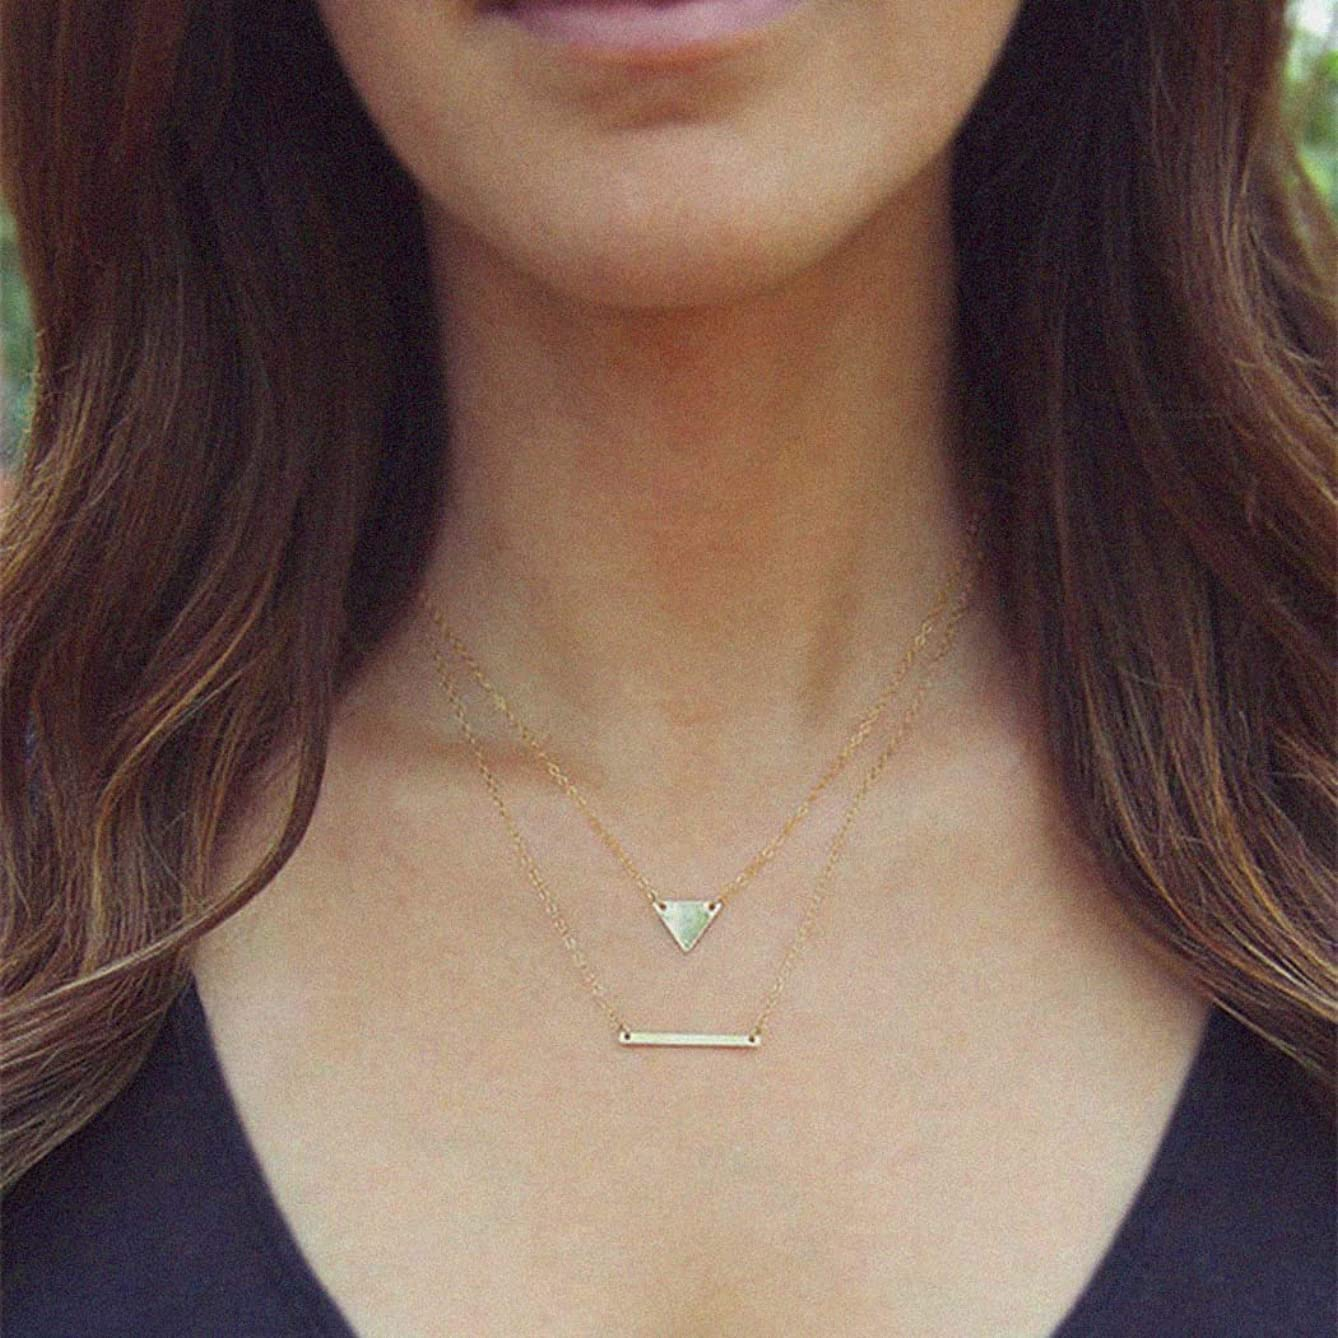 CanB Layered Bar Pendant Necklace Minimalism Choker Geometry Necklace Bar Chain Sideways Jewelry for Women and Girls (Gold)